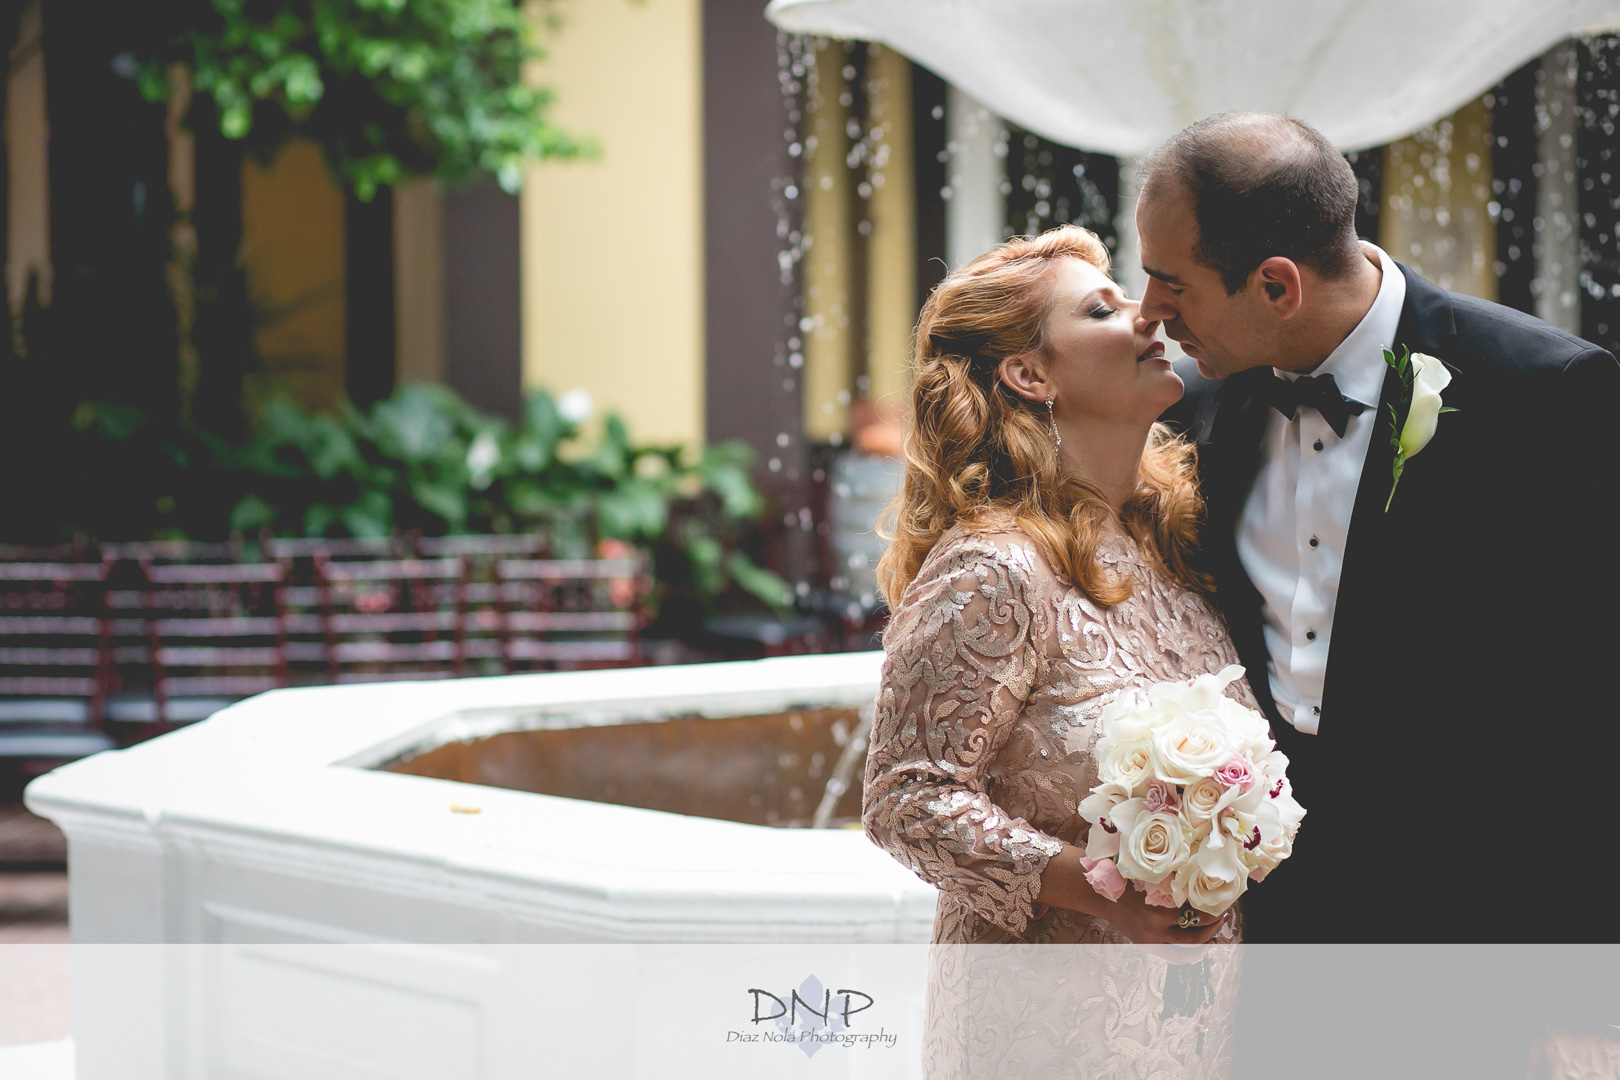 Tiffany + Chris Wedding- Hotel Mazarin (59 of 86)